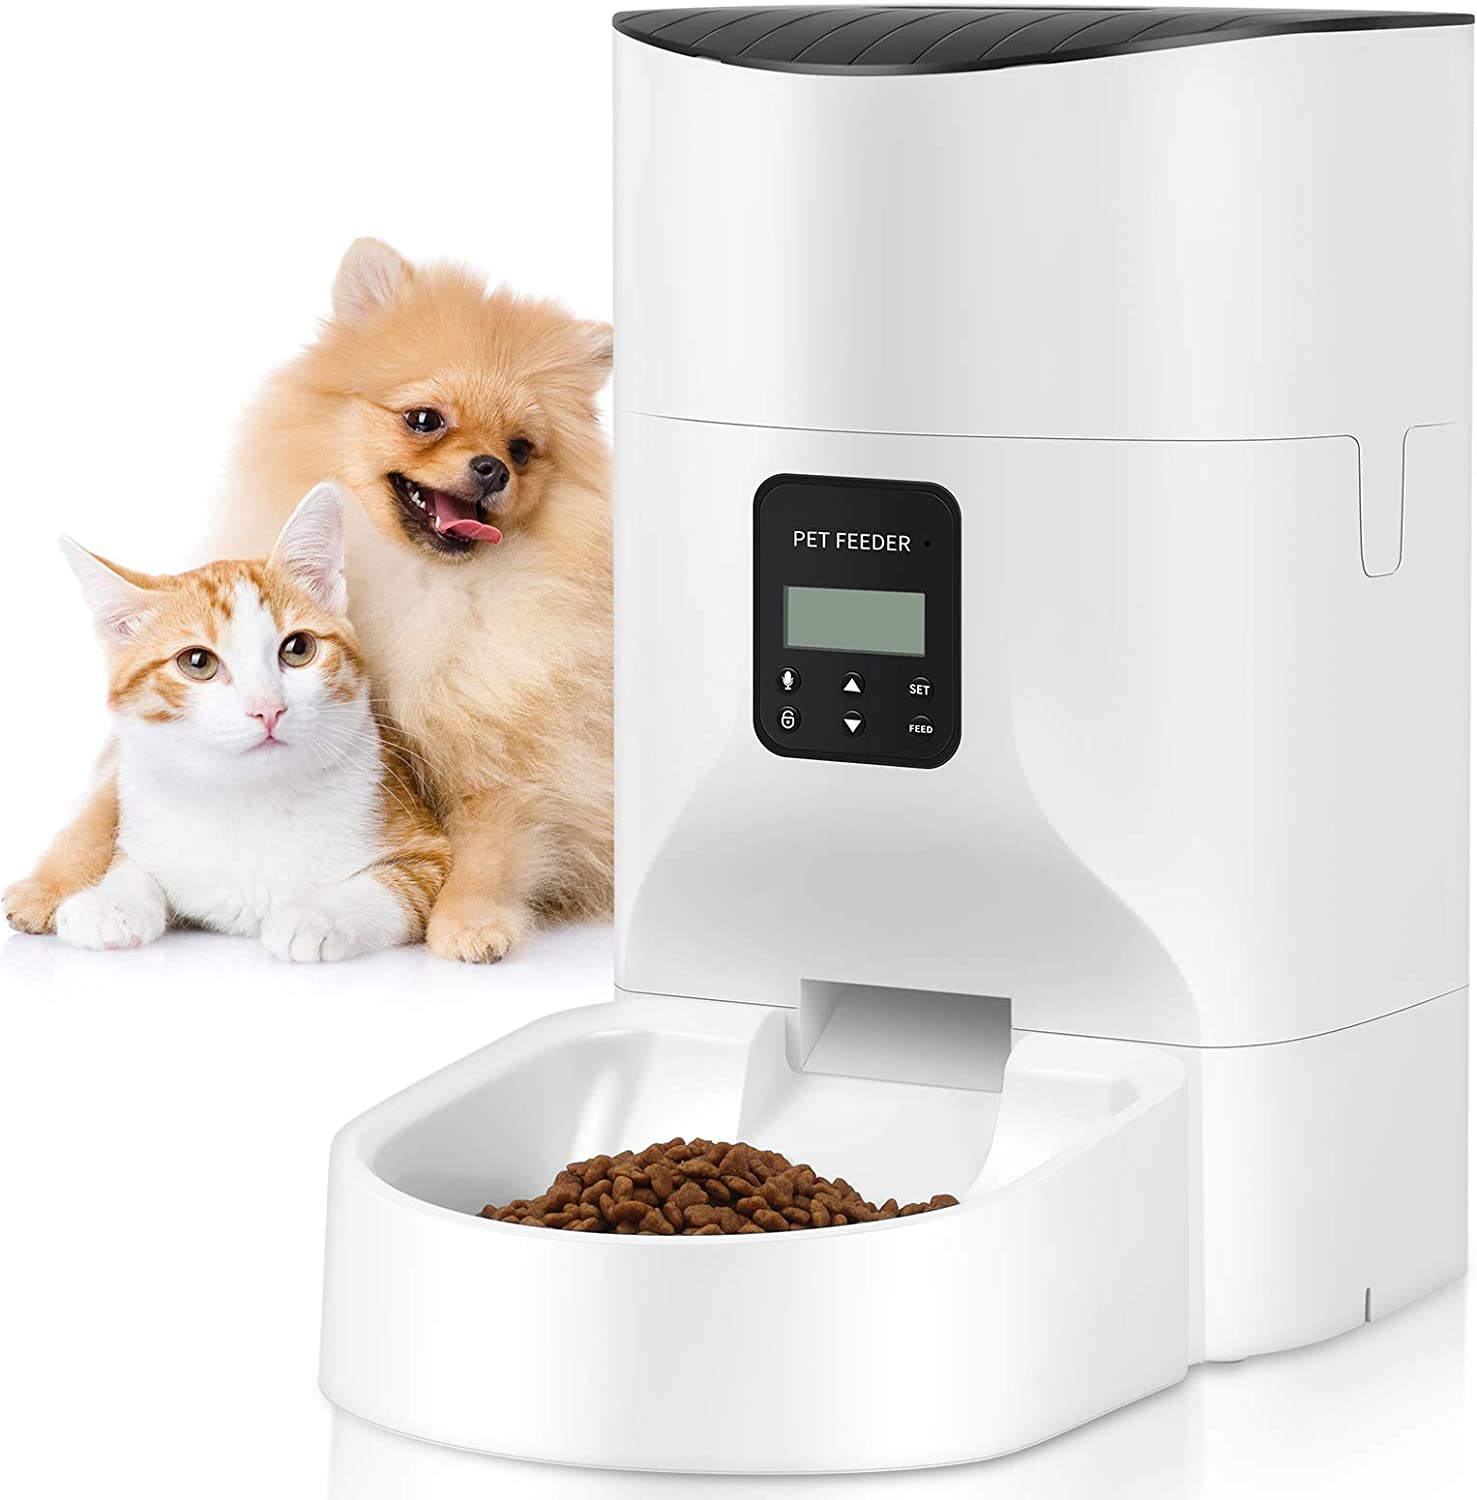 TOO TOO 7L Automatic Dog Feeder, Timer Cat Food Dispenser with Desiccant Bag for Dry Food, Programmable Portion Control 1-4 Meals per Day&Voice Recorder for Small/Medium Pets (White)